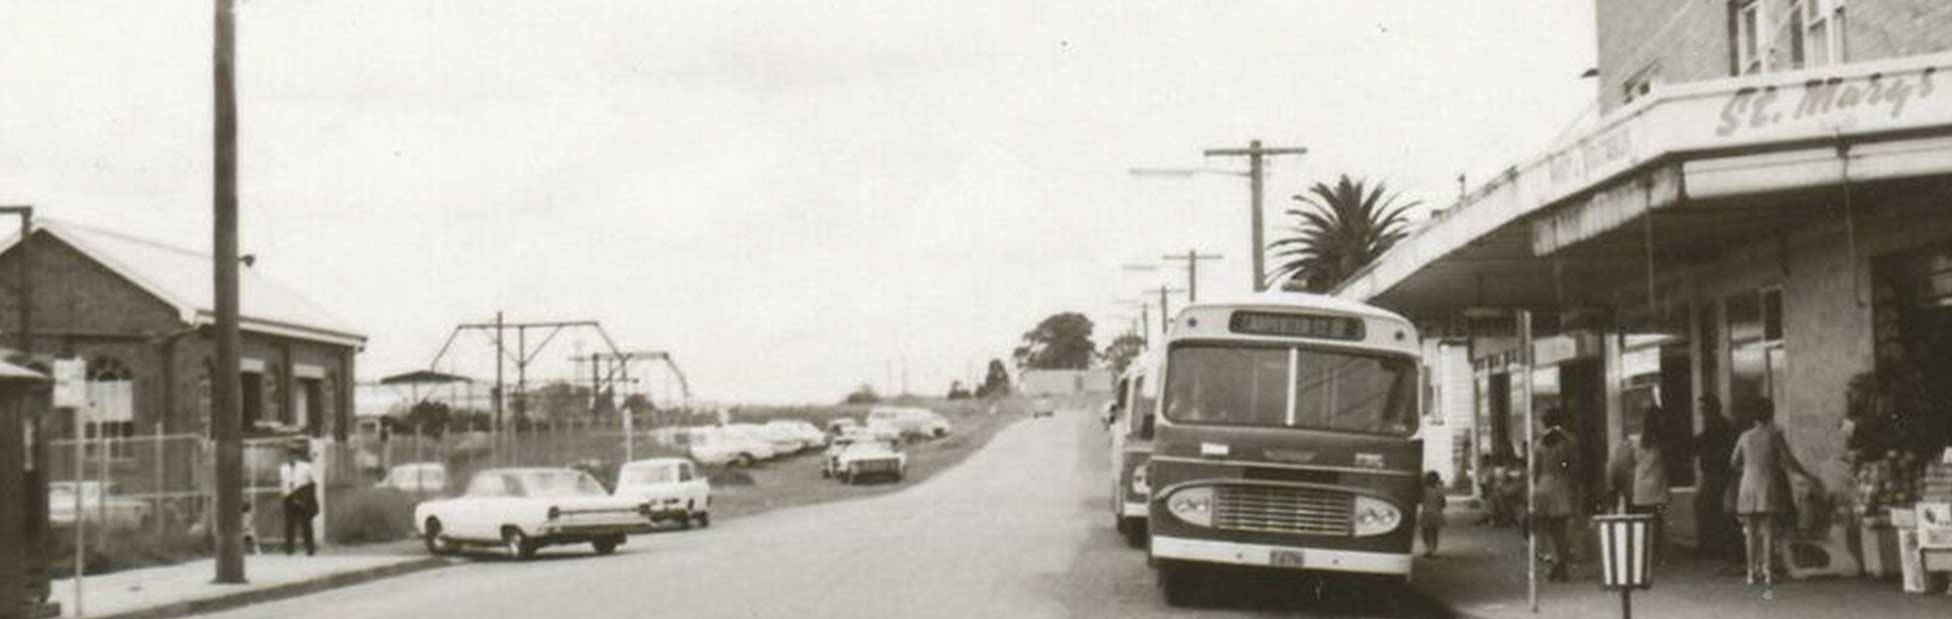 Historical image of bus in St Marys